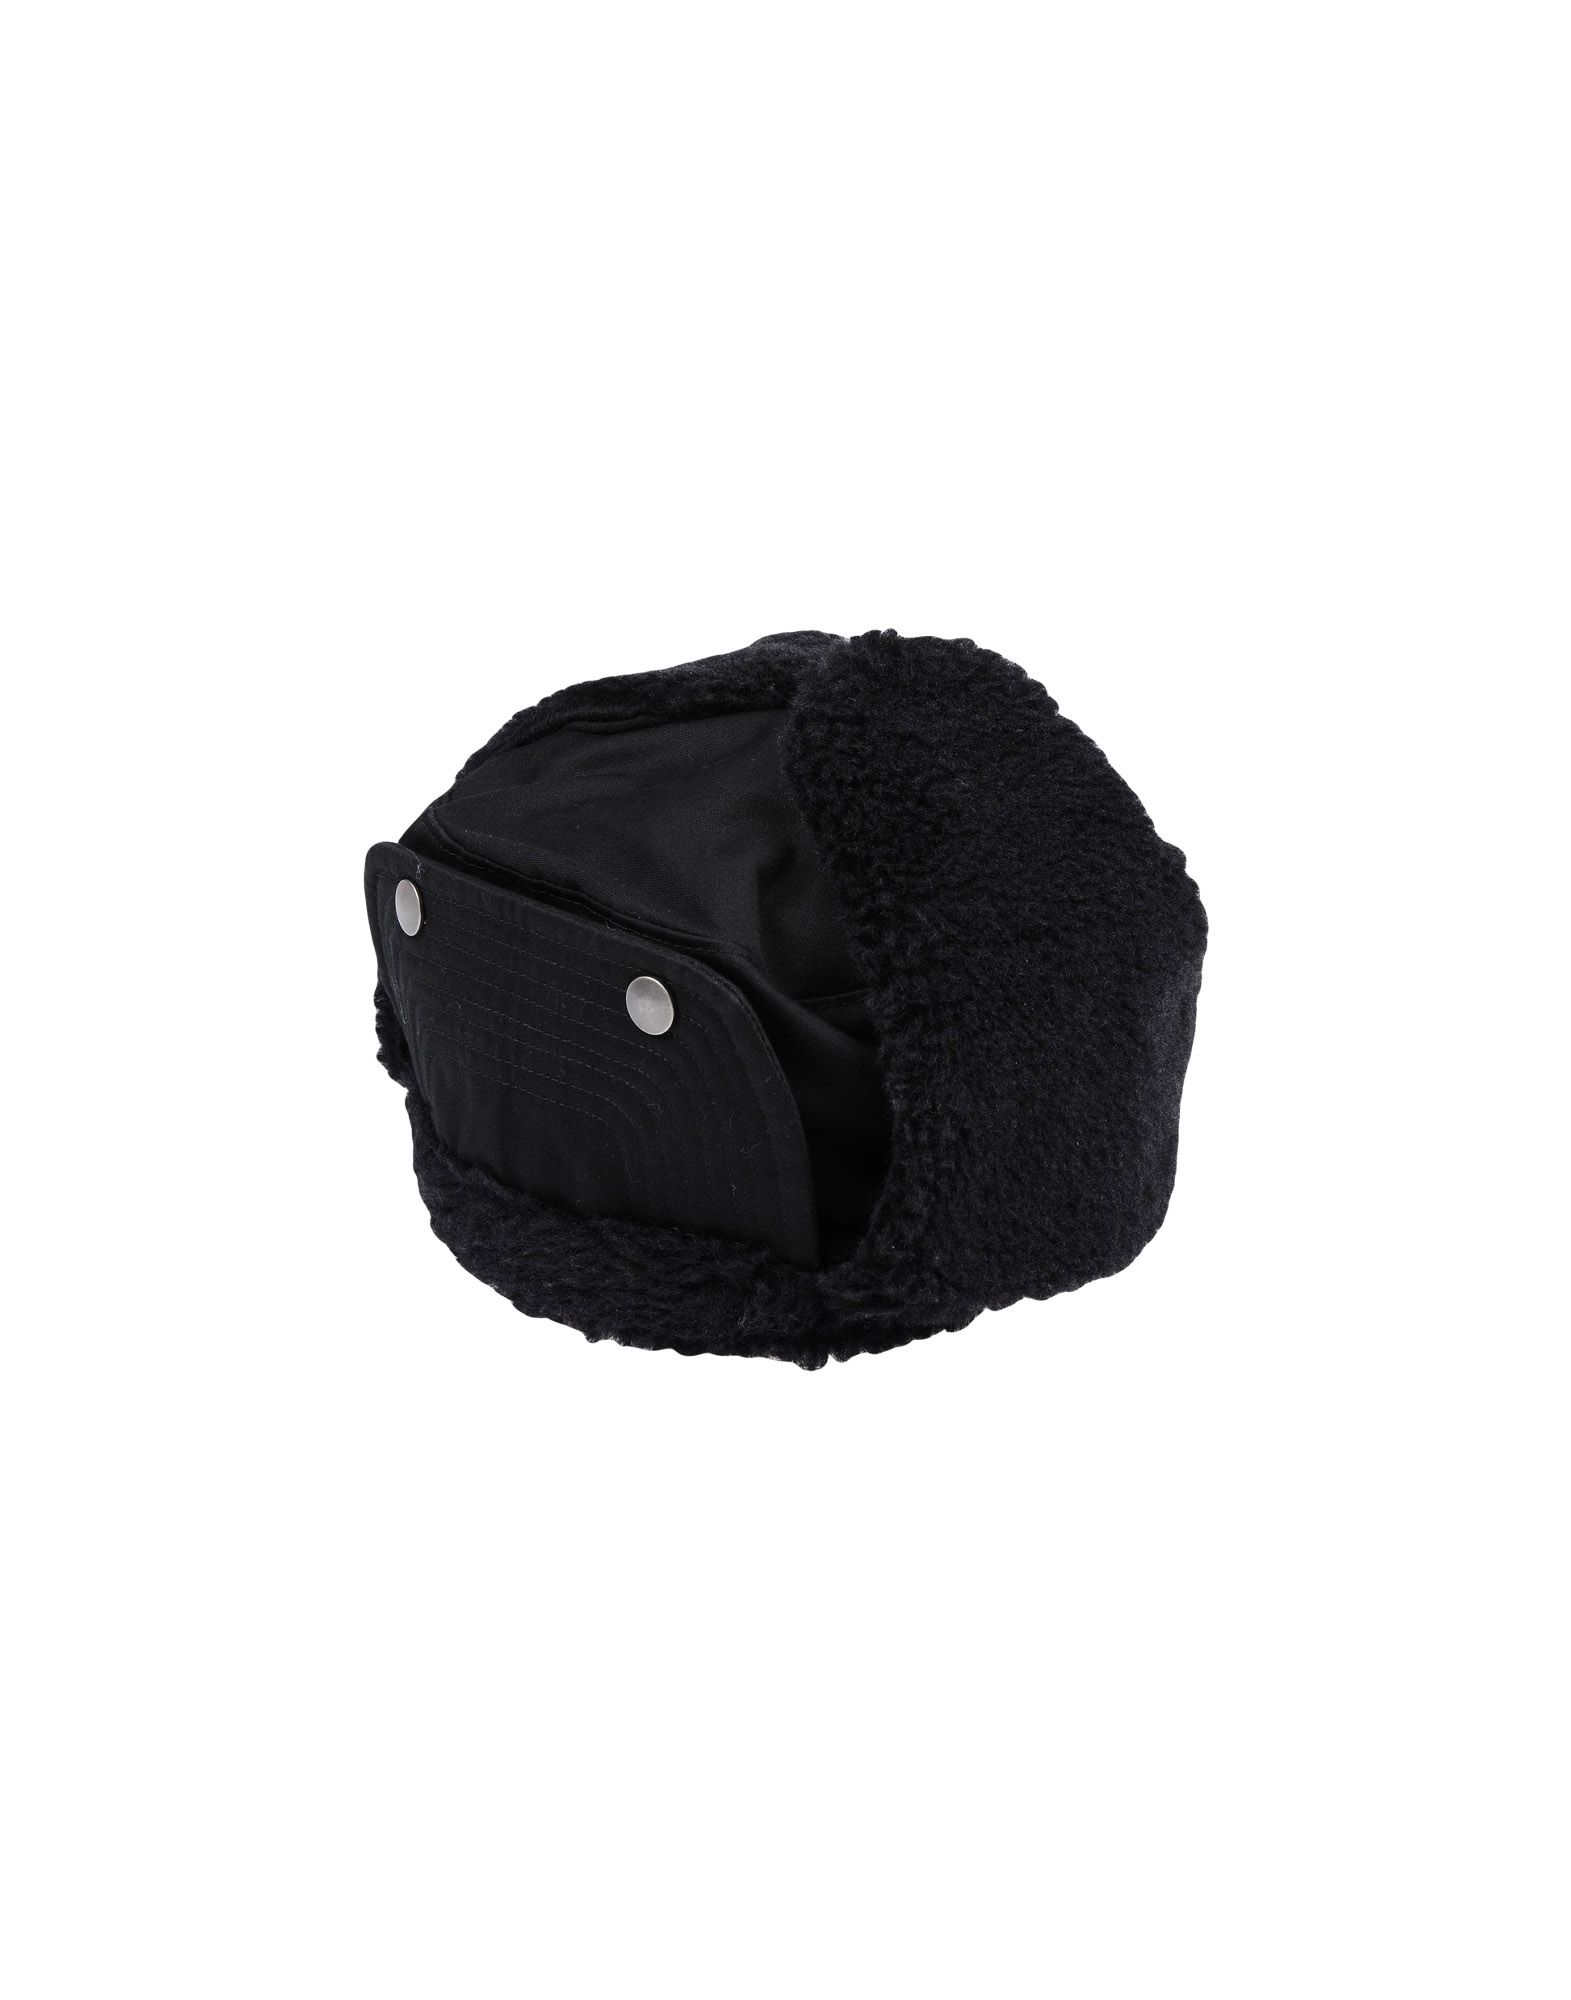 Men\'s hat online: caps, beanie, visor and bucket hats | YOOX